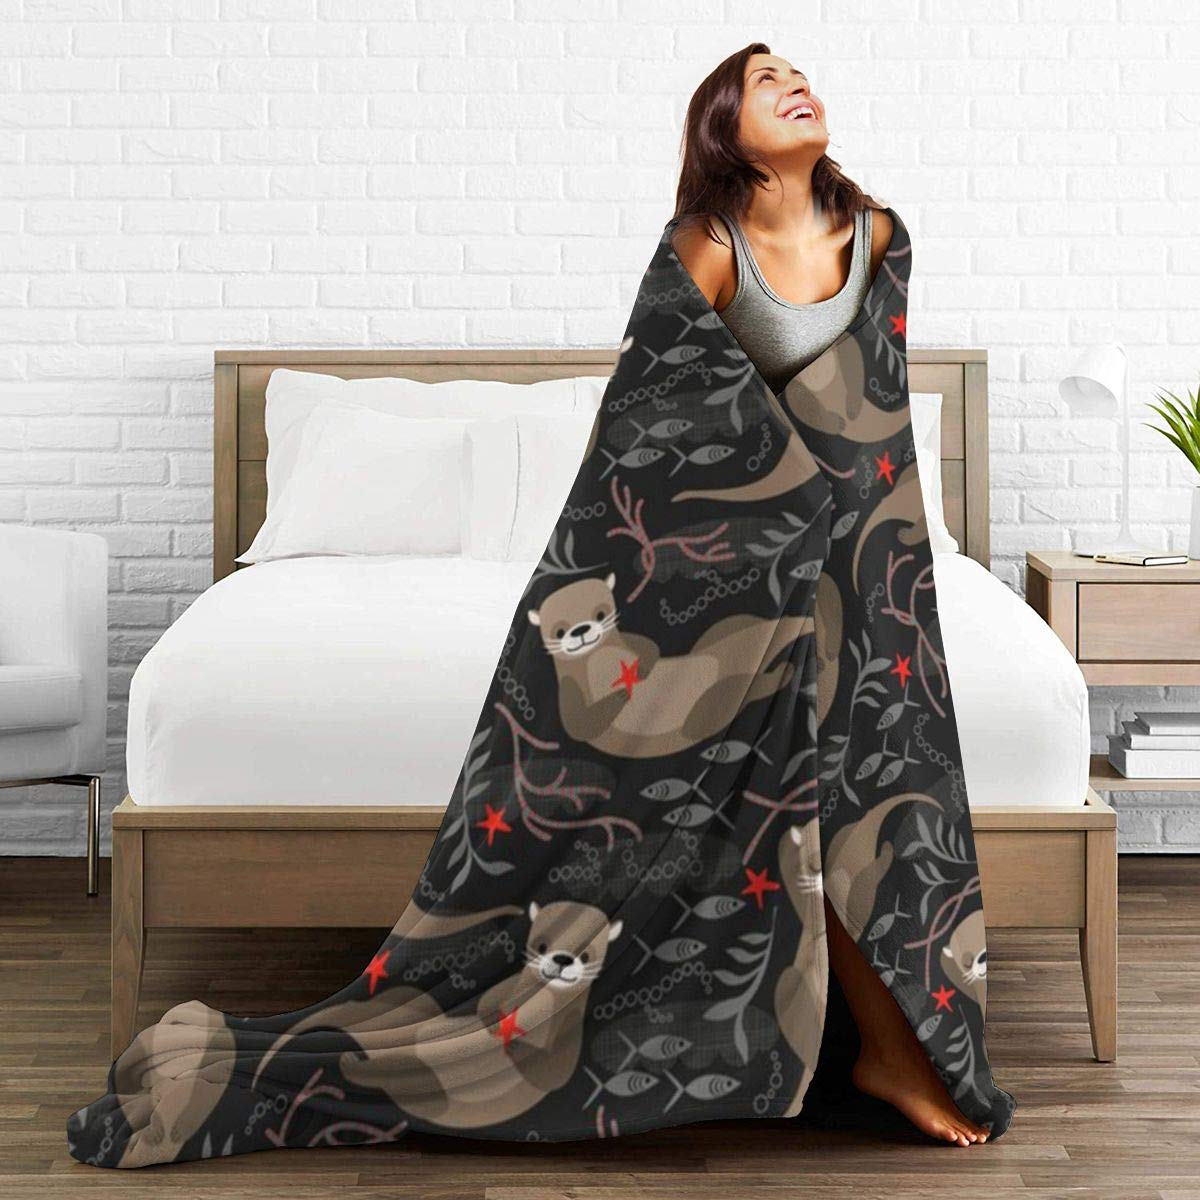 50 x 40 not Moonlight Significant Otters Flannel Blanket Super Soft and Comfortable Fuzzy Luxury Warm Plush Microfiber Blanket Suitable for Bed Sofa Travel Four Seasons Blanket